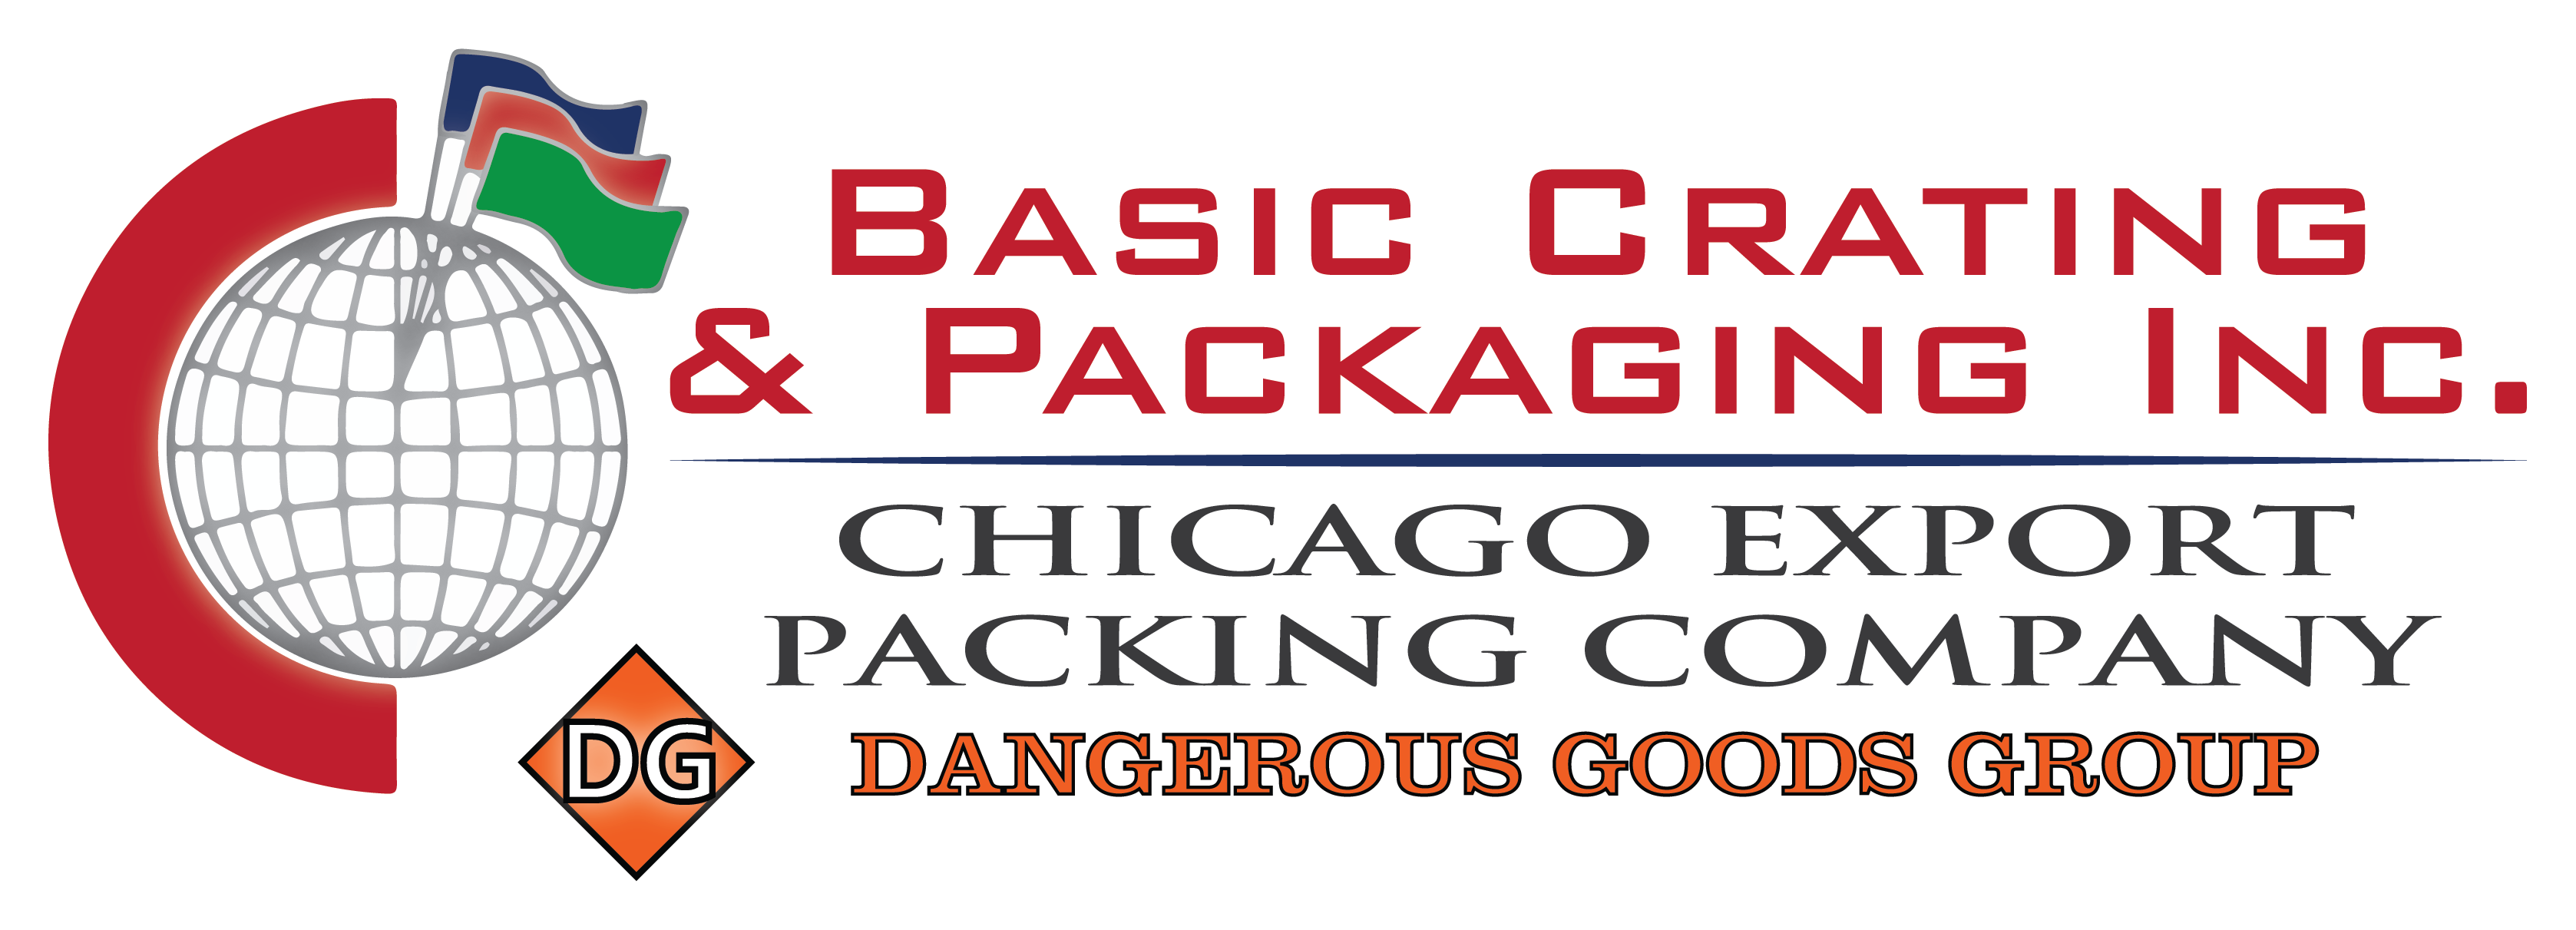 Basic Crating | Chicago Export